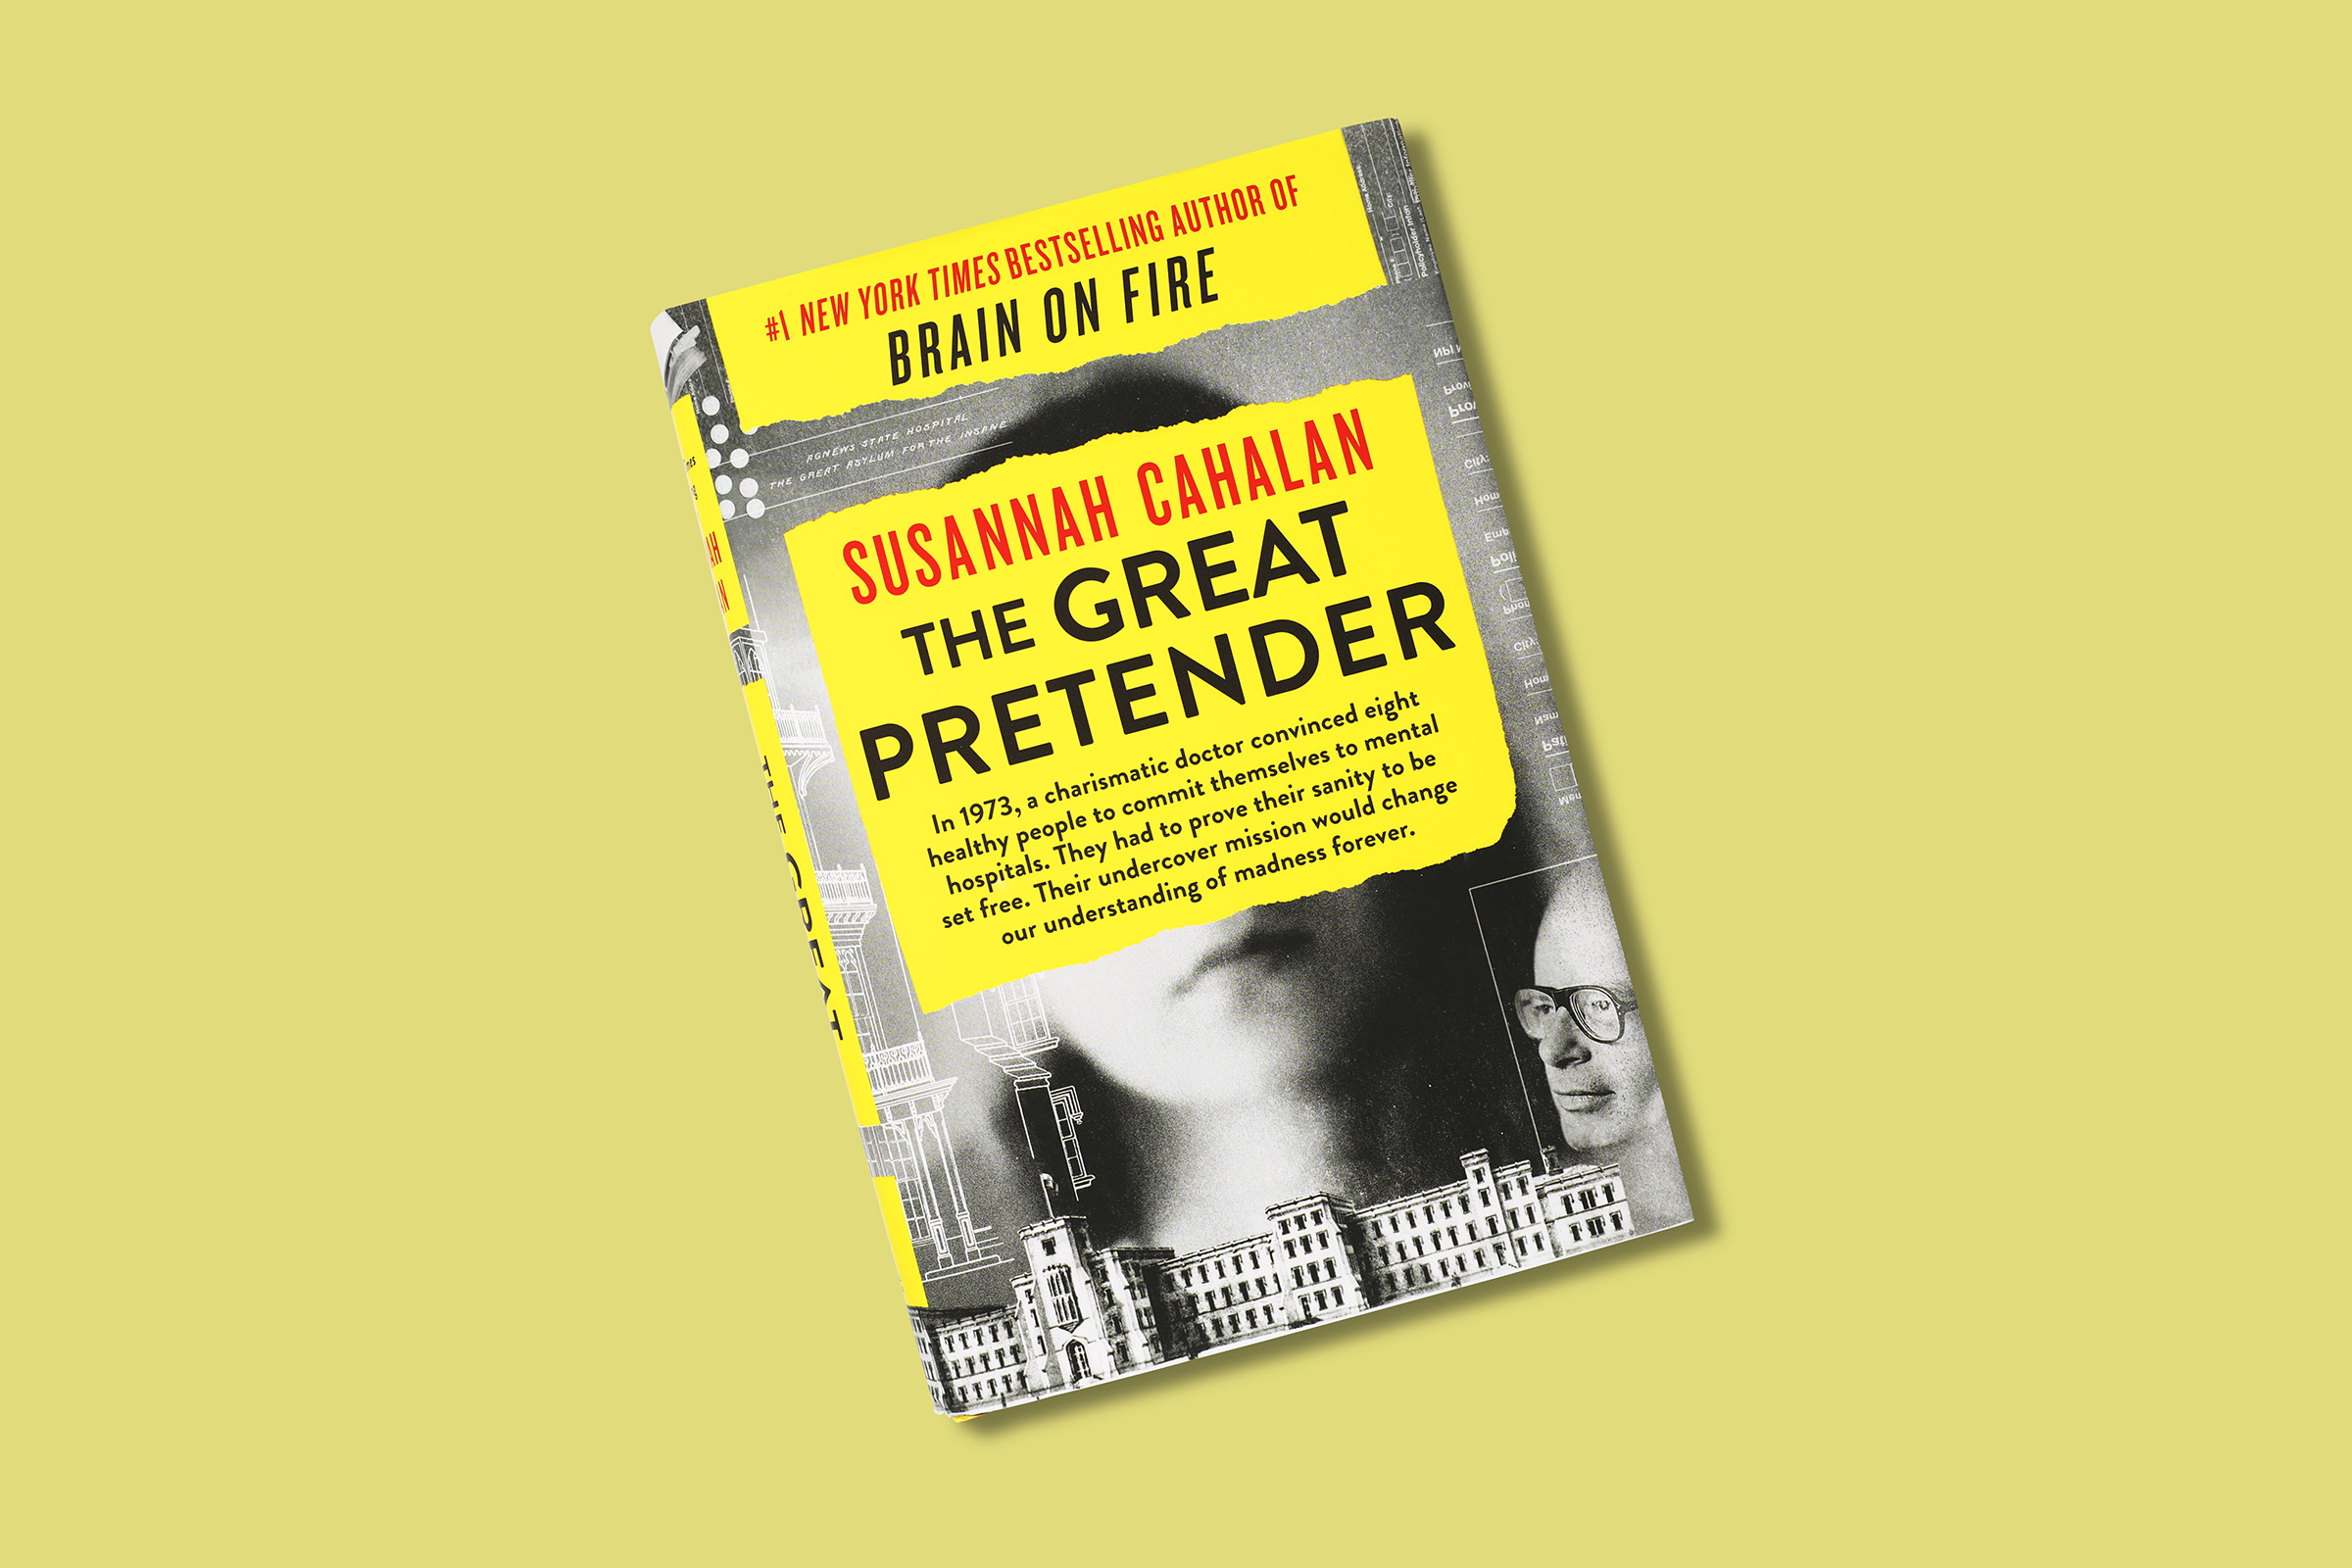 Cahalan's second book, The Great Pretender